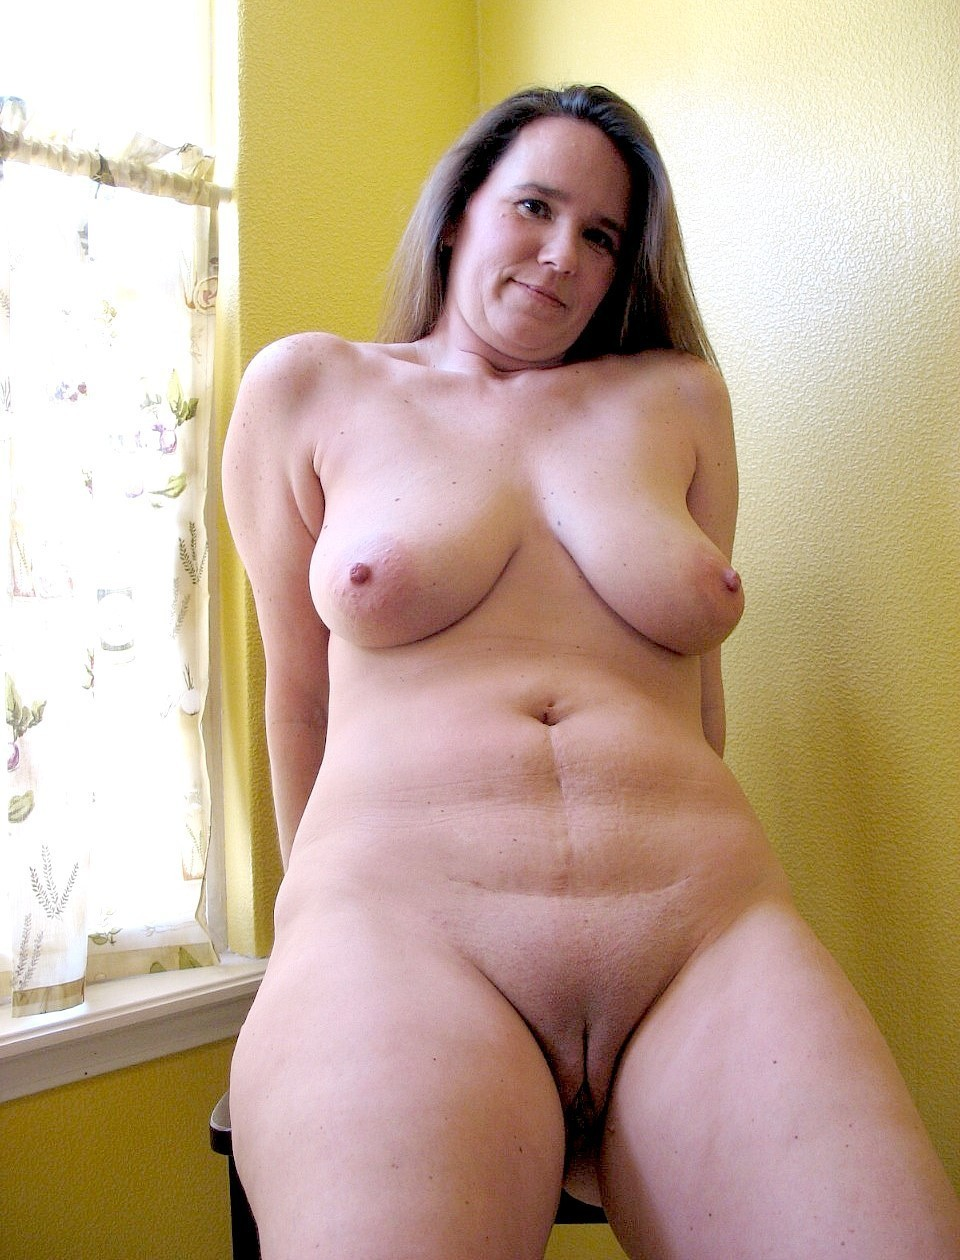 Chubby nude women free pictures